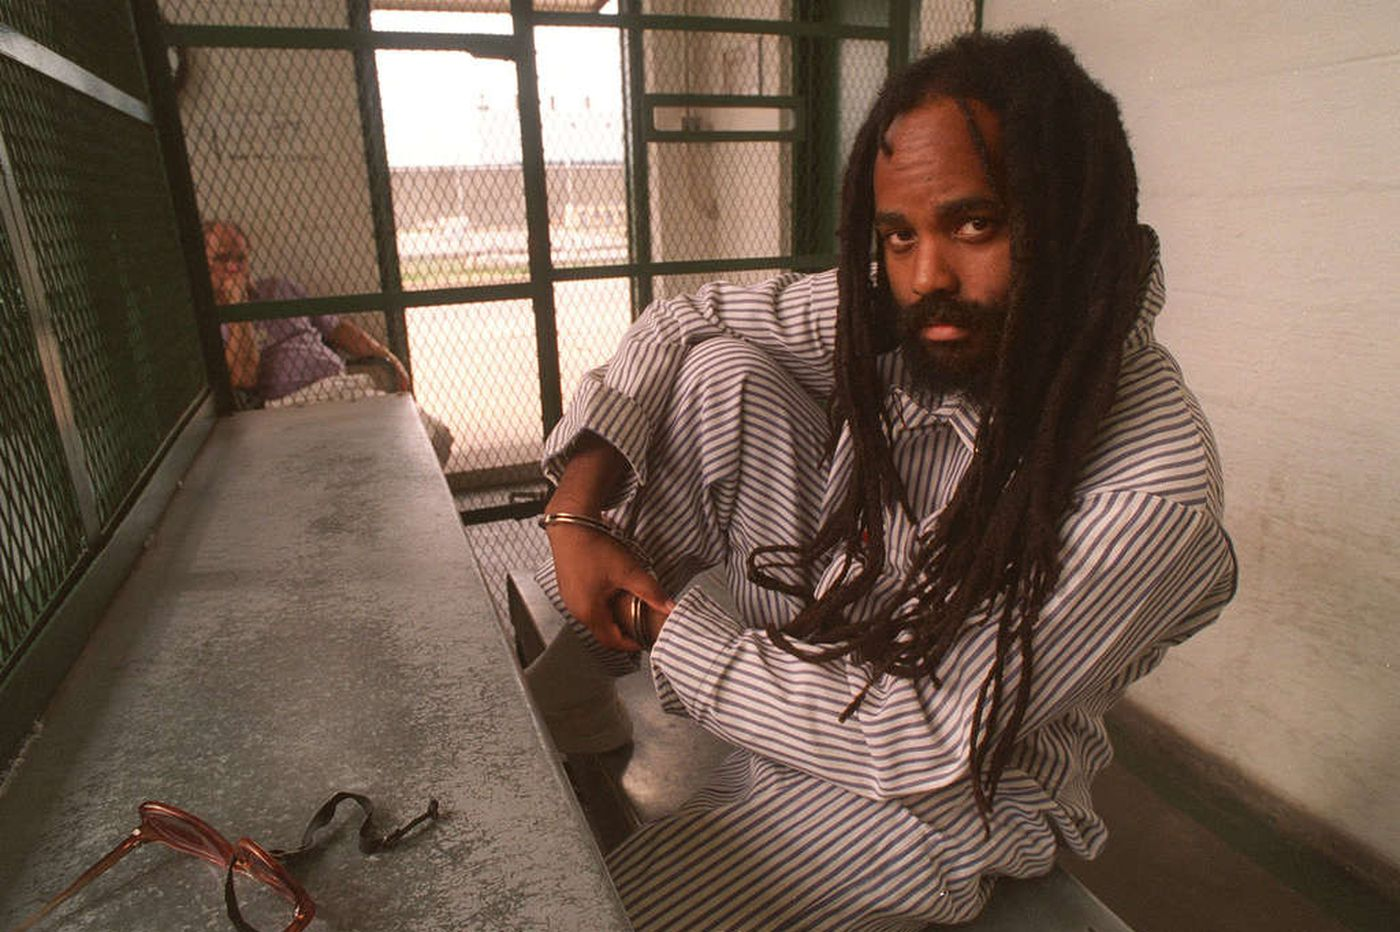 Philly DA's Office: Mumia Abu-Jamal case not affected by recently discovered files